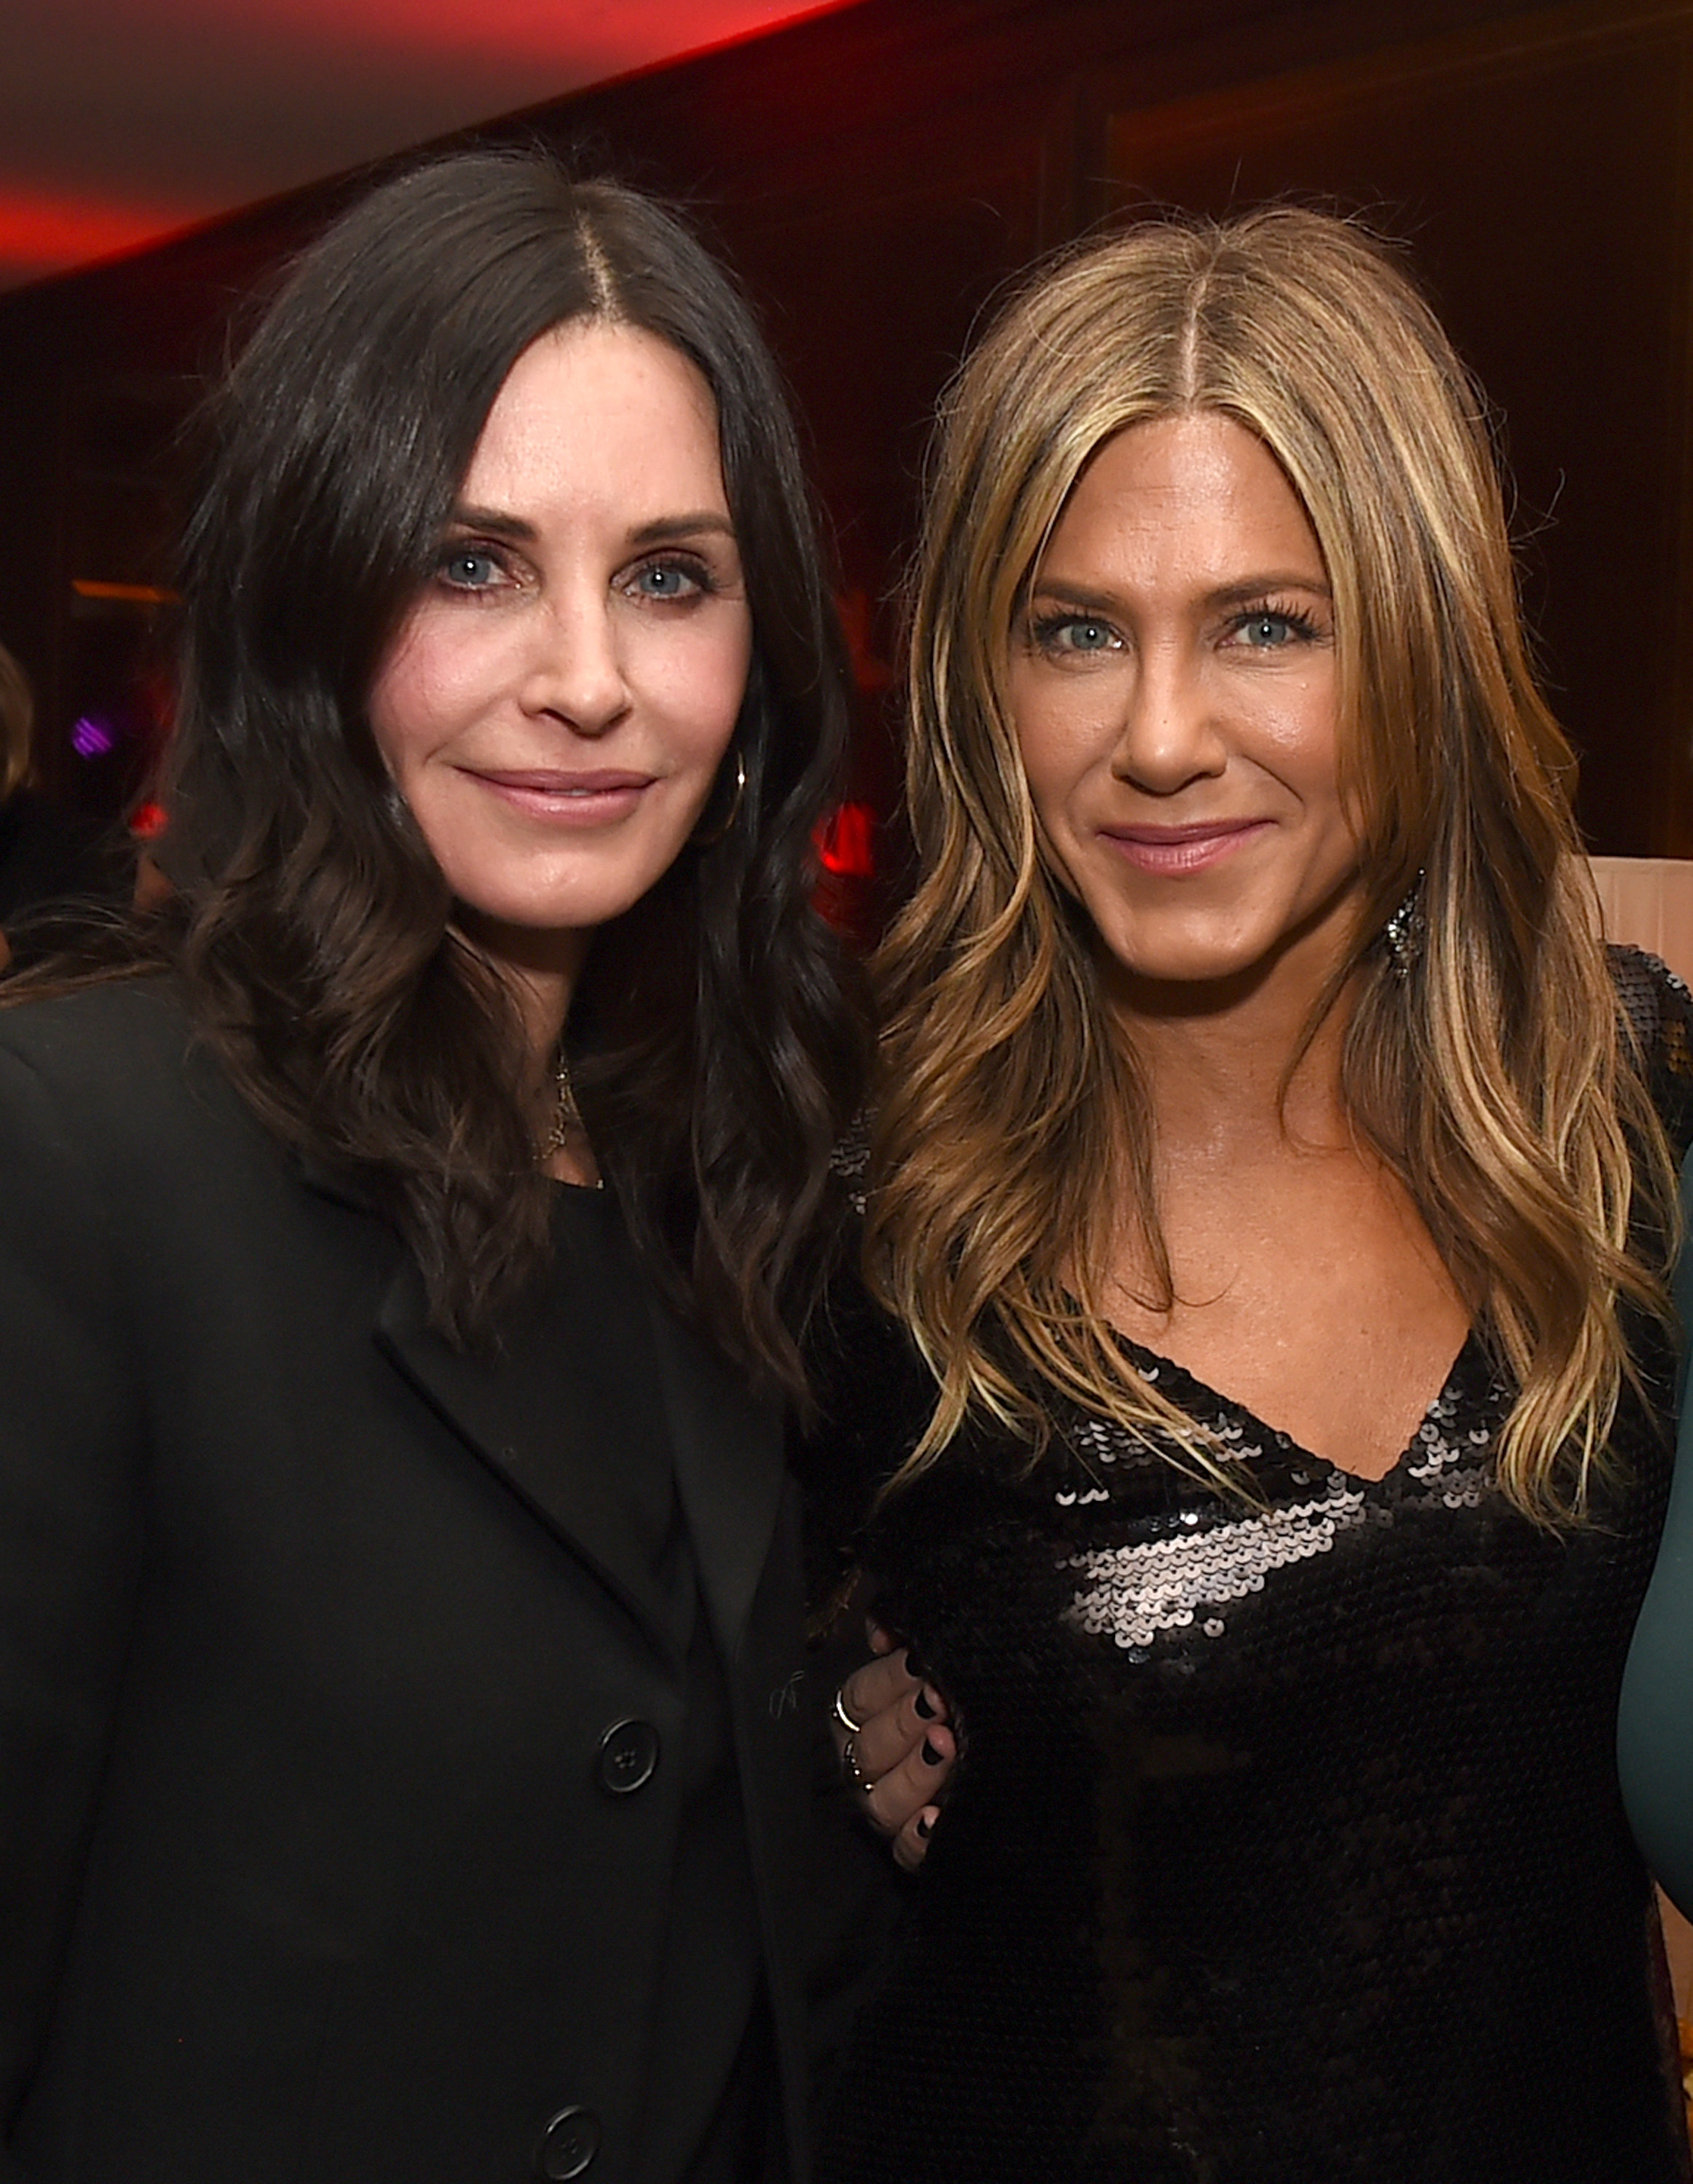 Courteney Cox (L) and Jennifer Aniston pose at the after party for the premiere of Netflix's 'Dumplin'' at Sunset Tower on December 6, 2018 in Los Angeles, California. (Photo by Kevin Winter/Getty Images)